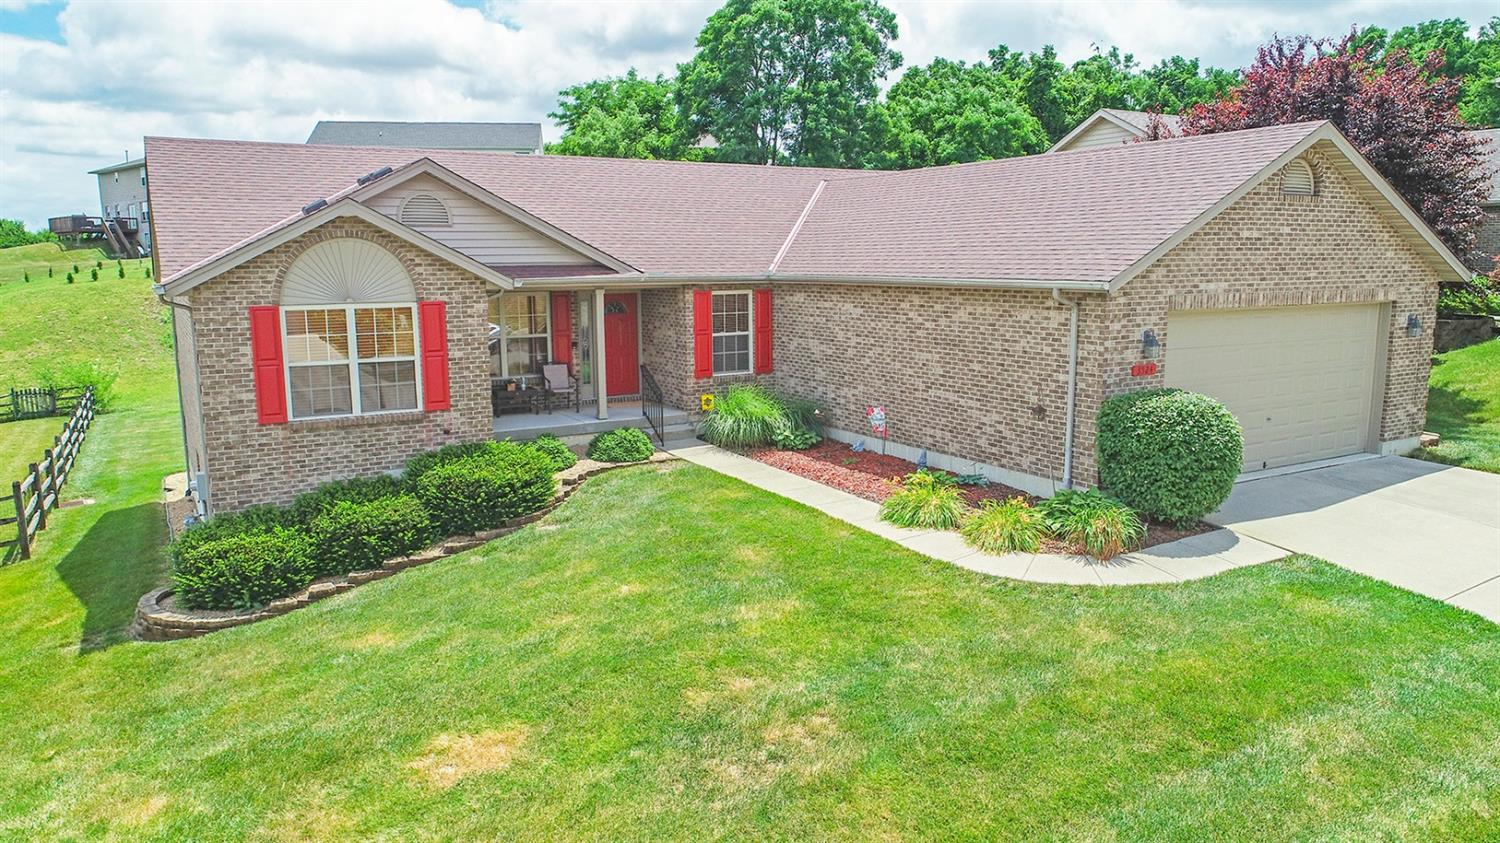 Property for sale at 3524 Alec Drive, Fairfield,  Ohio 45014